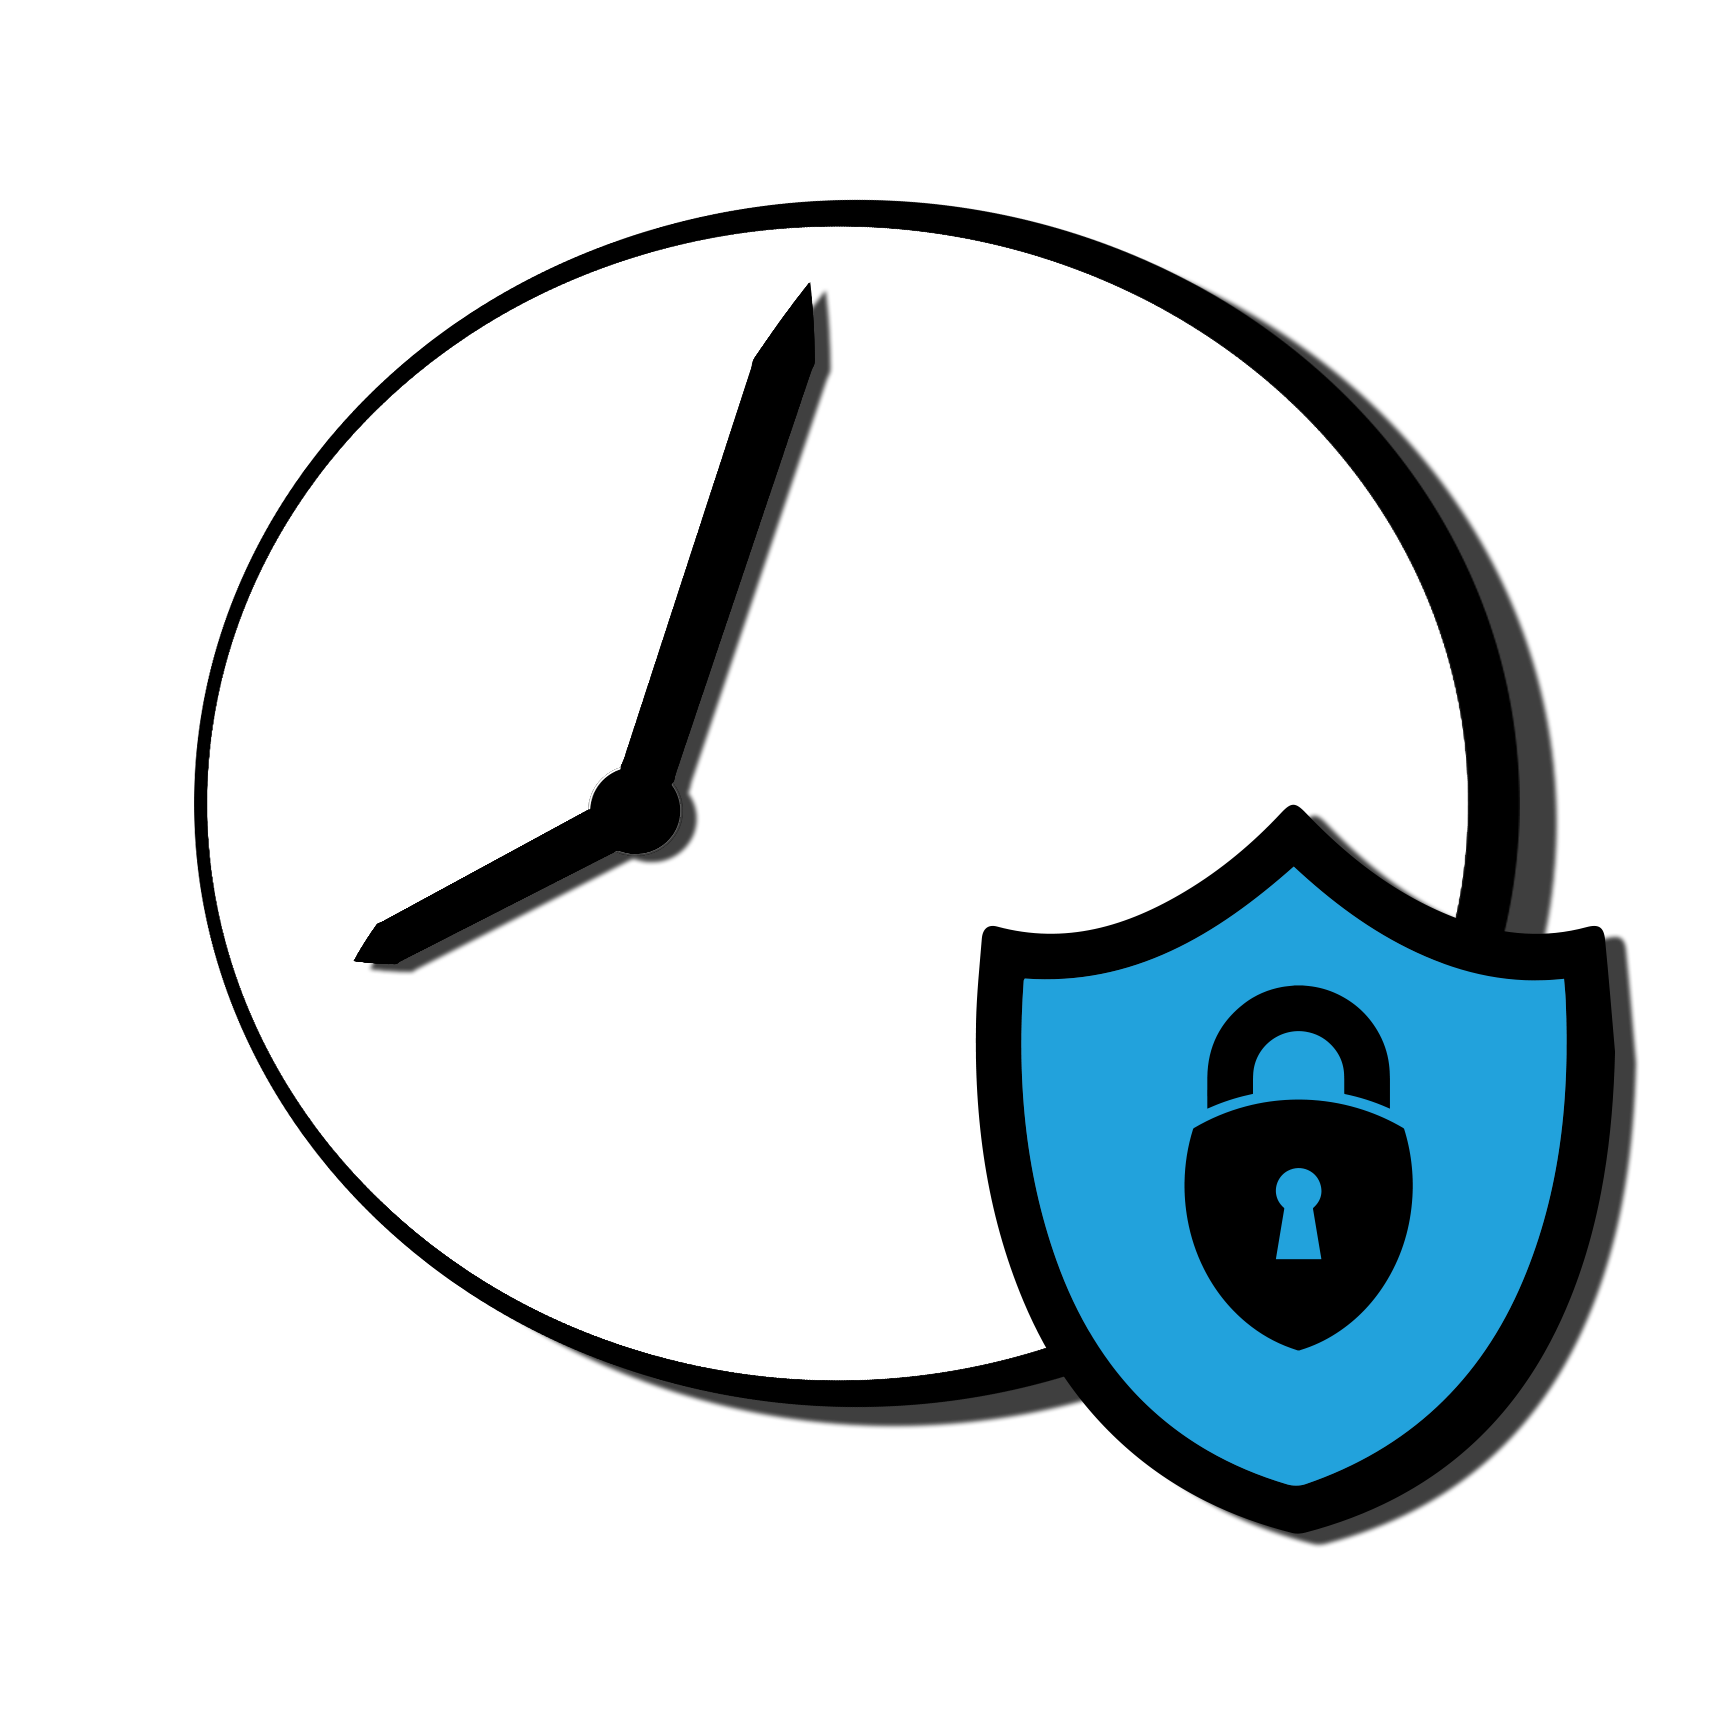 email security 24 hours